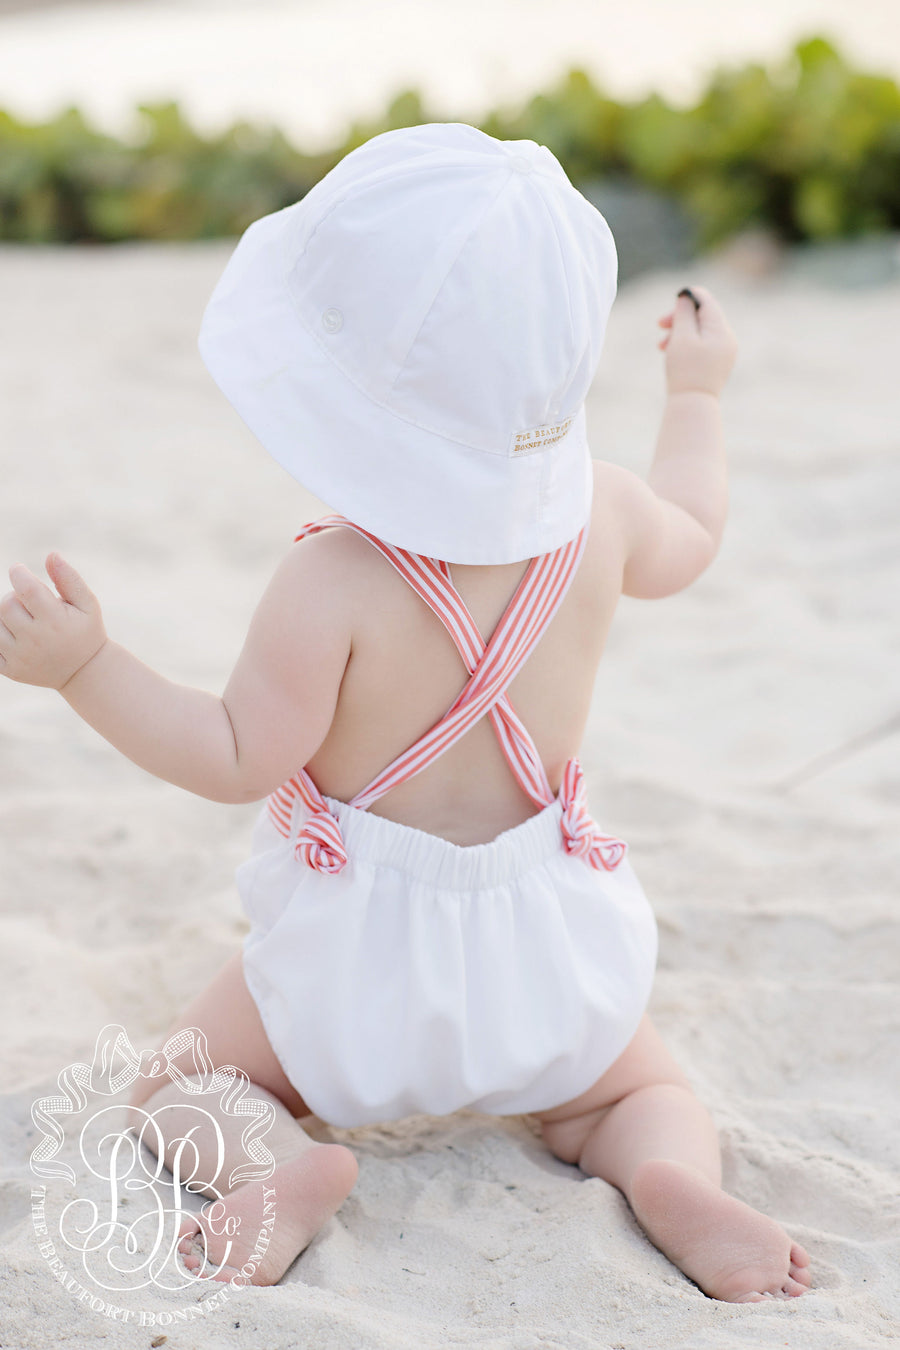 Sayre Sunsuit - Worth Avenue White with Tega Cay Tangerine Stripe